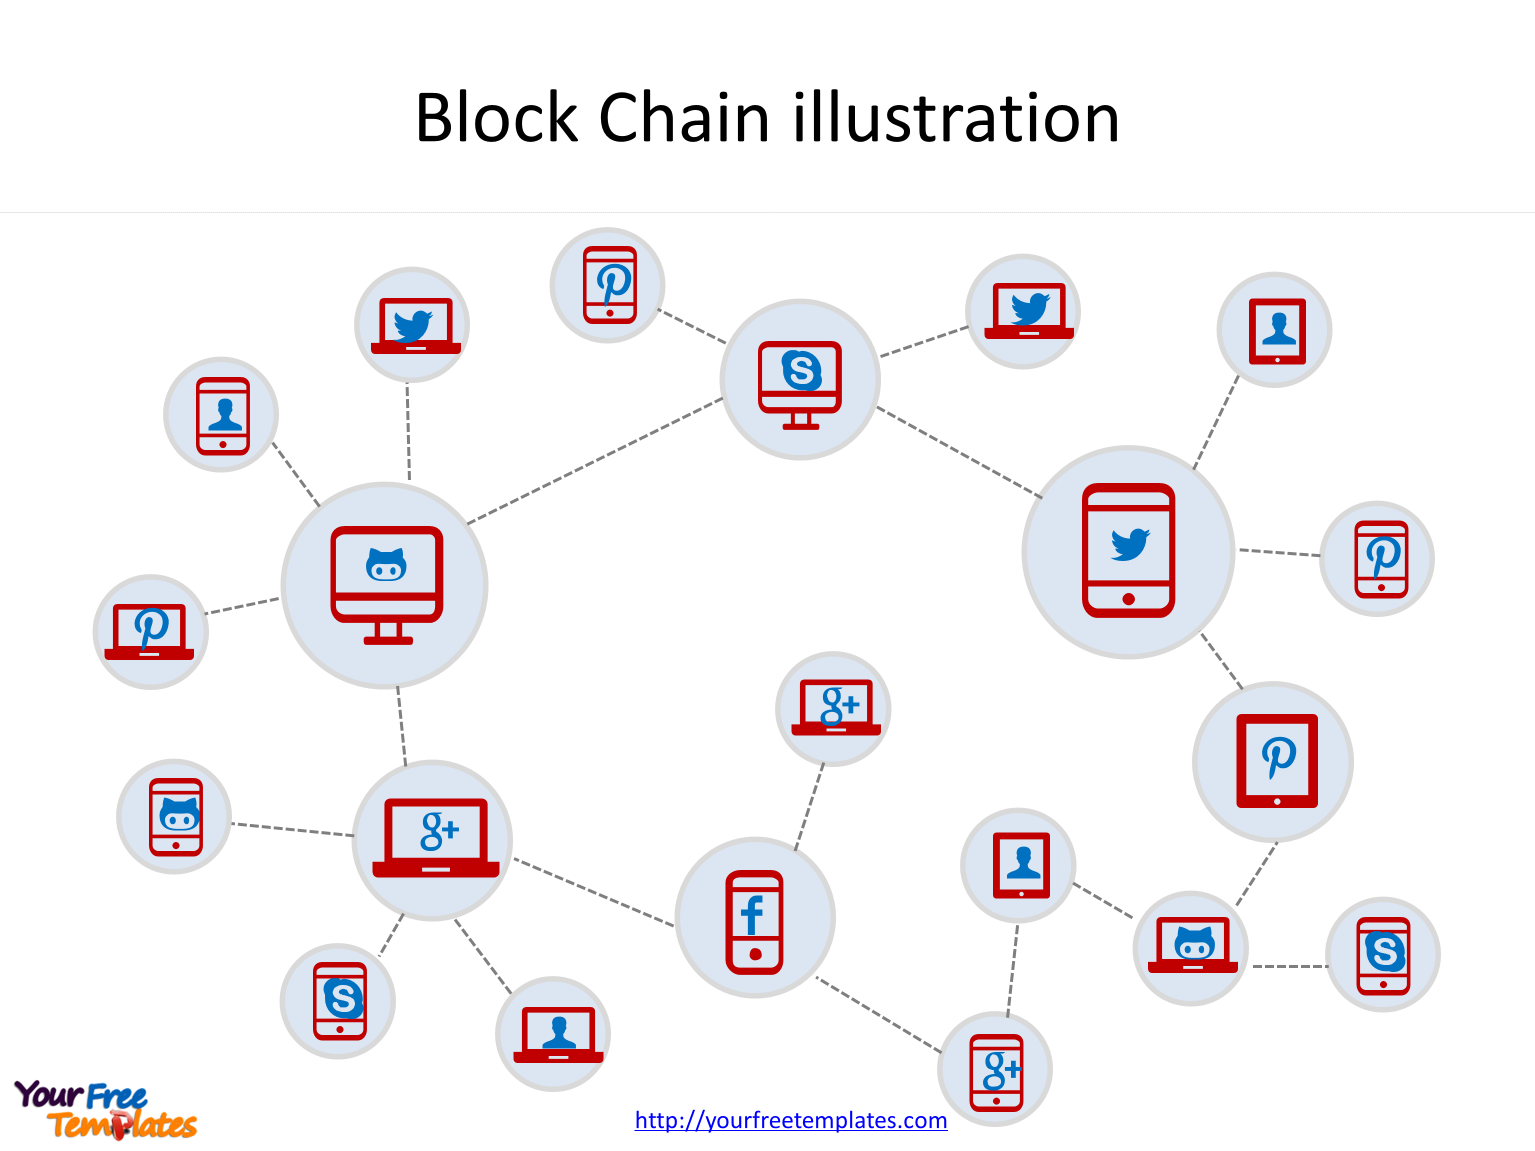 Blockchain technology with vivid illustration to present the distributed network of block chain in PowerPoint templates.